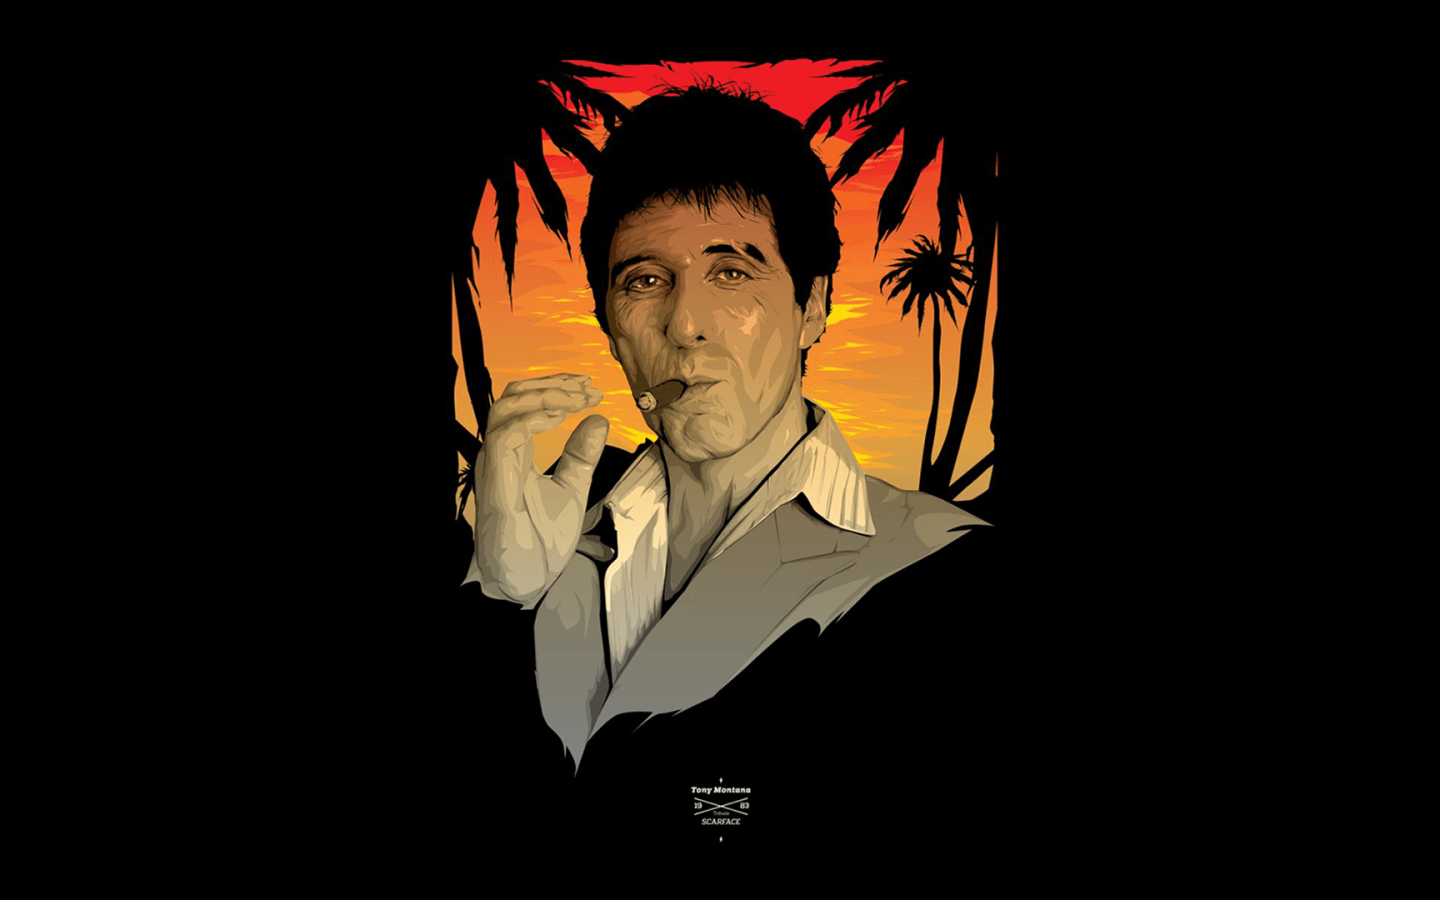 Tony Montana Wallpapers Top Free Tony Montana Backgrounds Wallpaperaccess